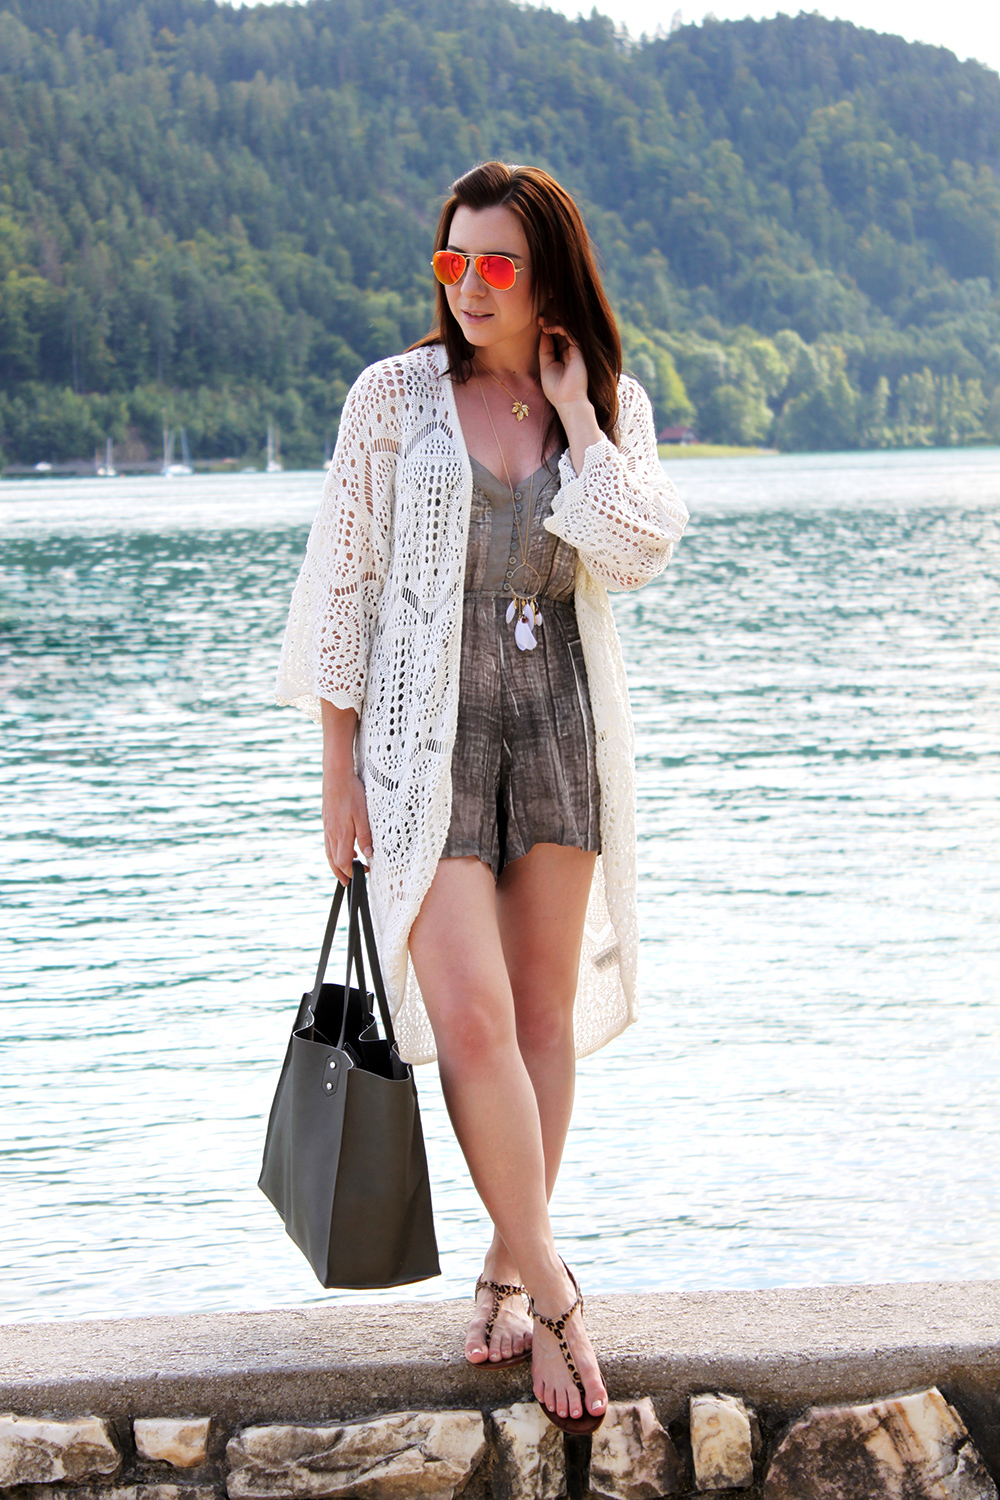 who is mocca, fashionblog österreich, fashionblog tirol, how to style jumpsuit, how to wear jumpsuit, religion jumpsuit asos, cardigan strick häkel lace spitze H&M, leopard sandalen hallhuber, shopper khaki zara, ray ban sonnenbrille verspiegelt rot orange, federkette asos, outfit mit playsuit